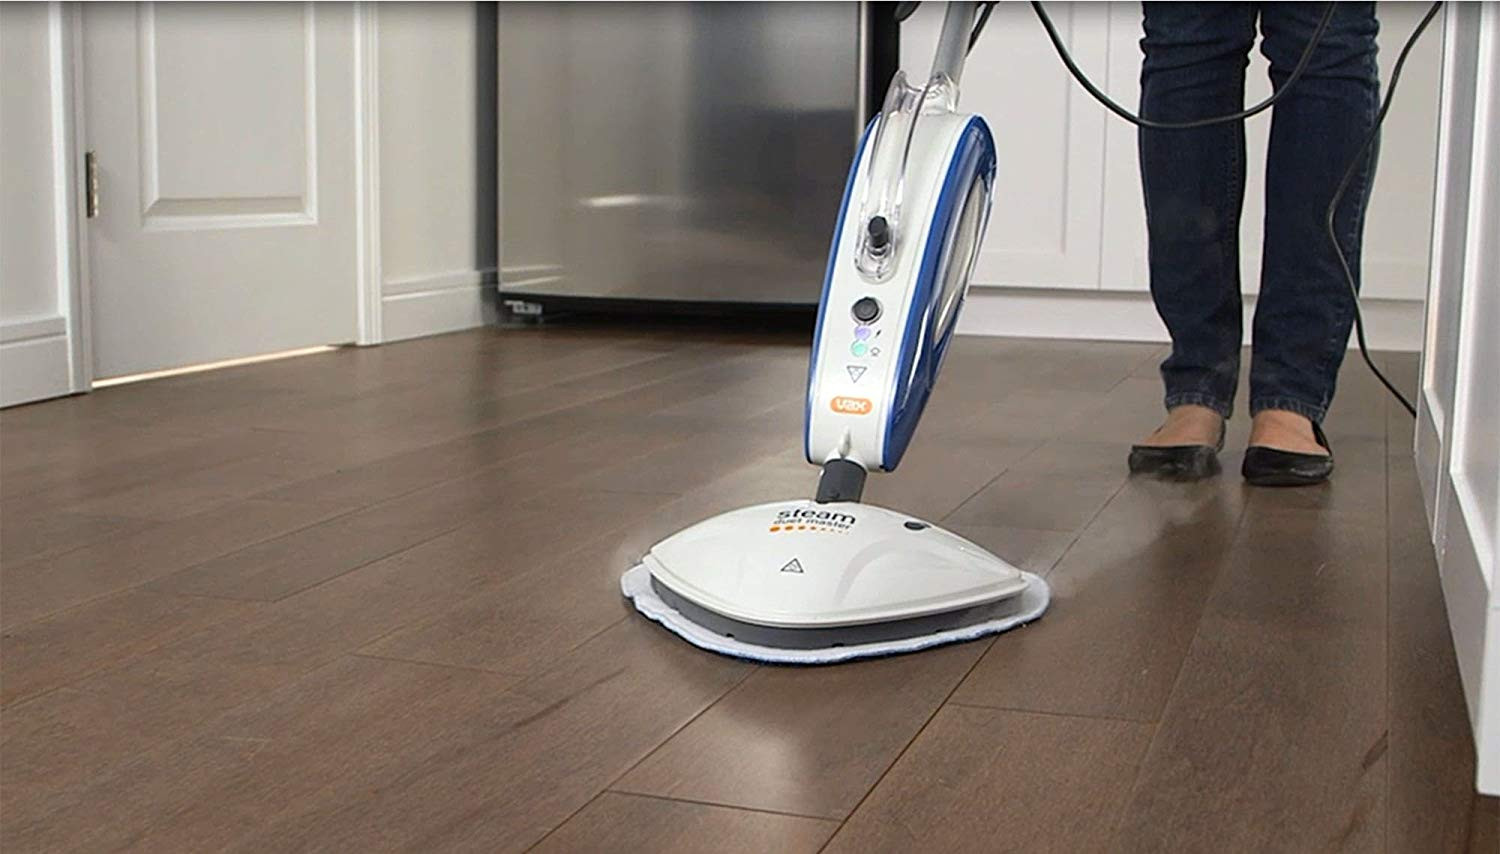 bissell hardwood floor steam cleaner of amazon com vax steam mop s7 2 in 1 upright and handheld steam for amazon com vax steam mop s7 2 in 1 upright and handheld steam cleaner by vax kitchen dining